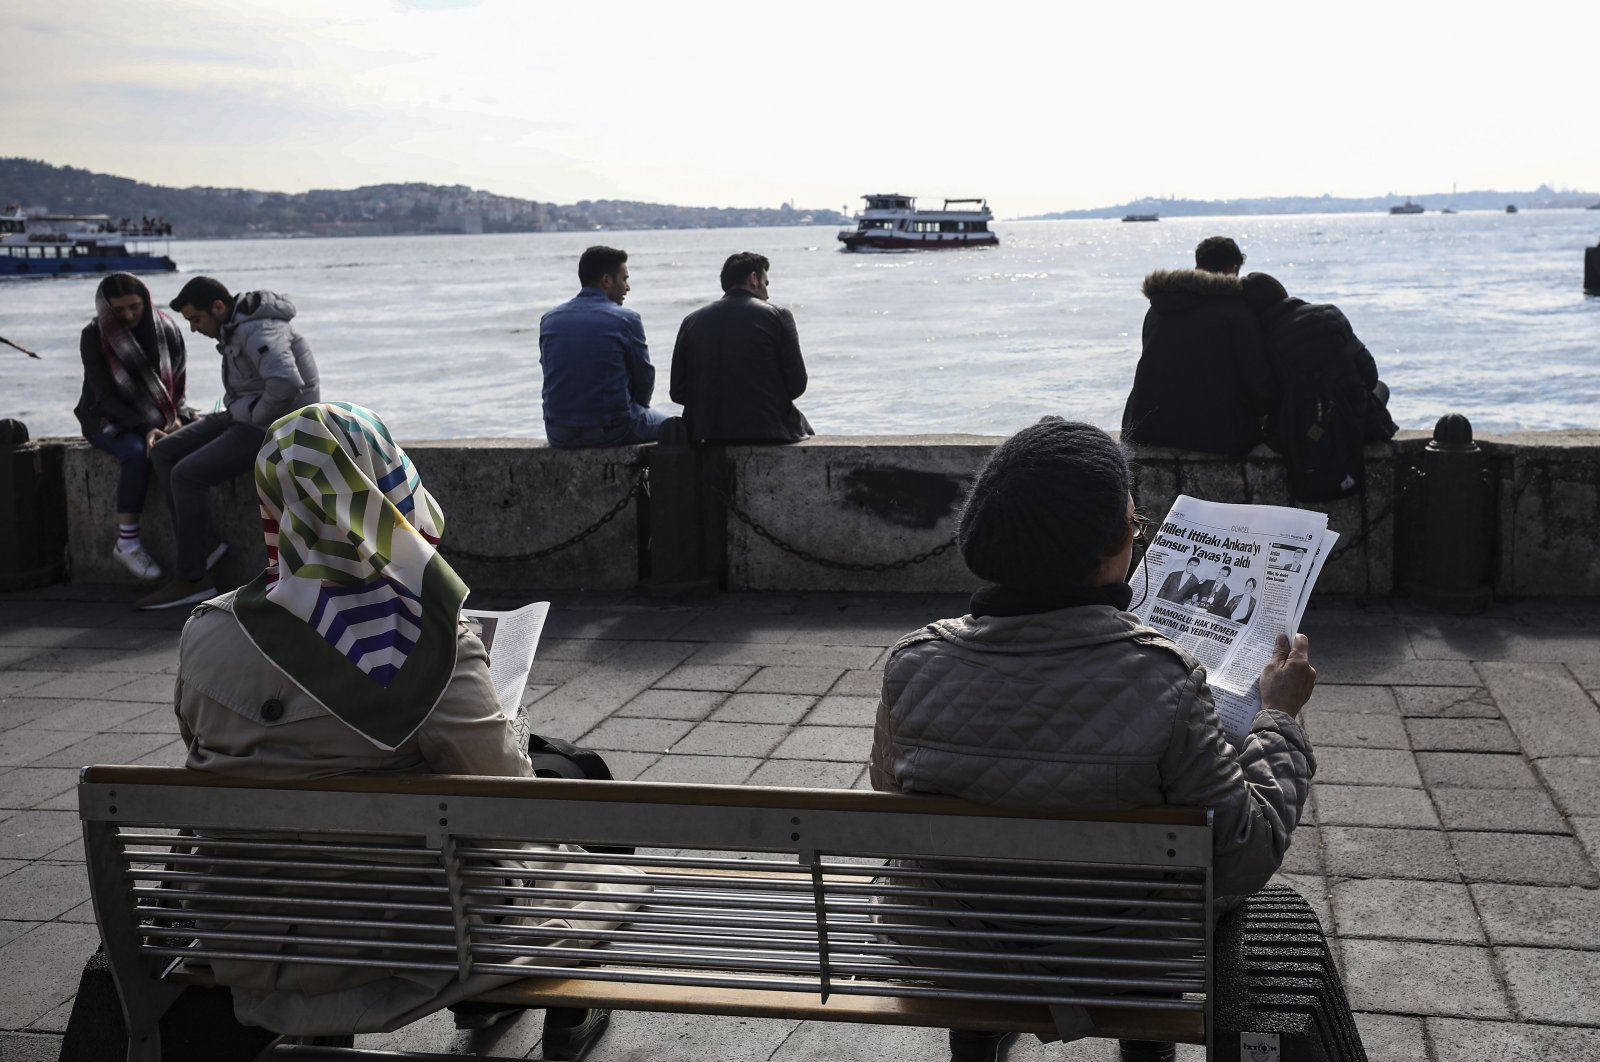 People sit reading newspapers that contain information regarding local elections a day after the vote, next to the Bosporus in Istanbul, Turkey, April 1, 2019. (AP Photo)